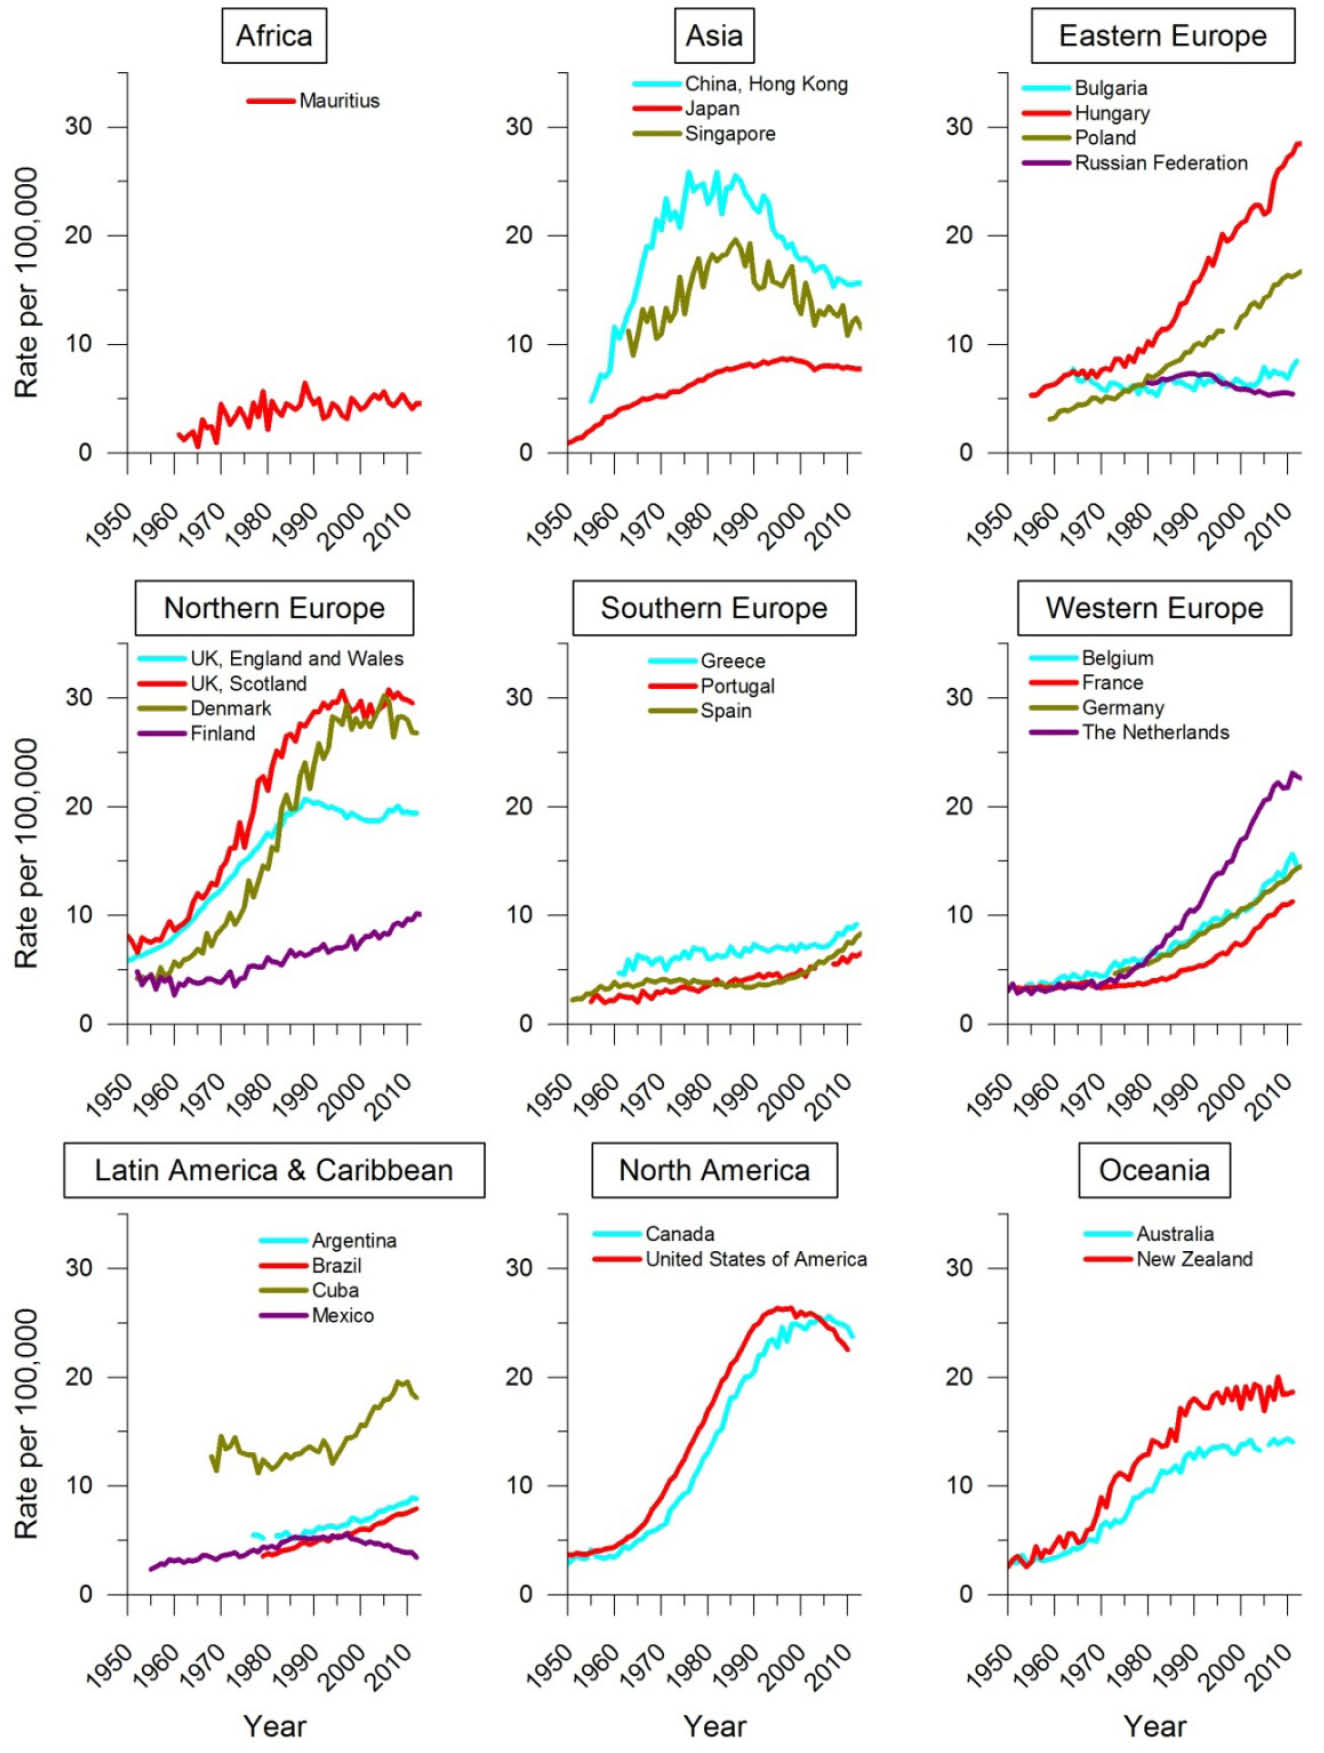 the prevalence and epidemic of breath cancer worldwide In some lmics where the tobacco epidemic is newer or has not yet taken   female breast cancer incidence rates vary by more than 10-fold.